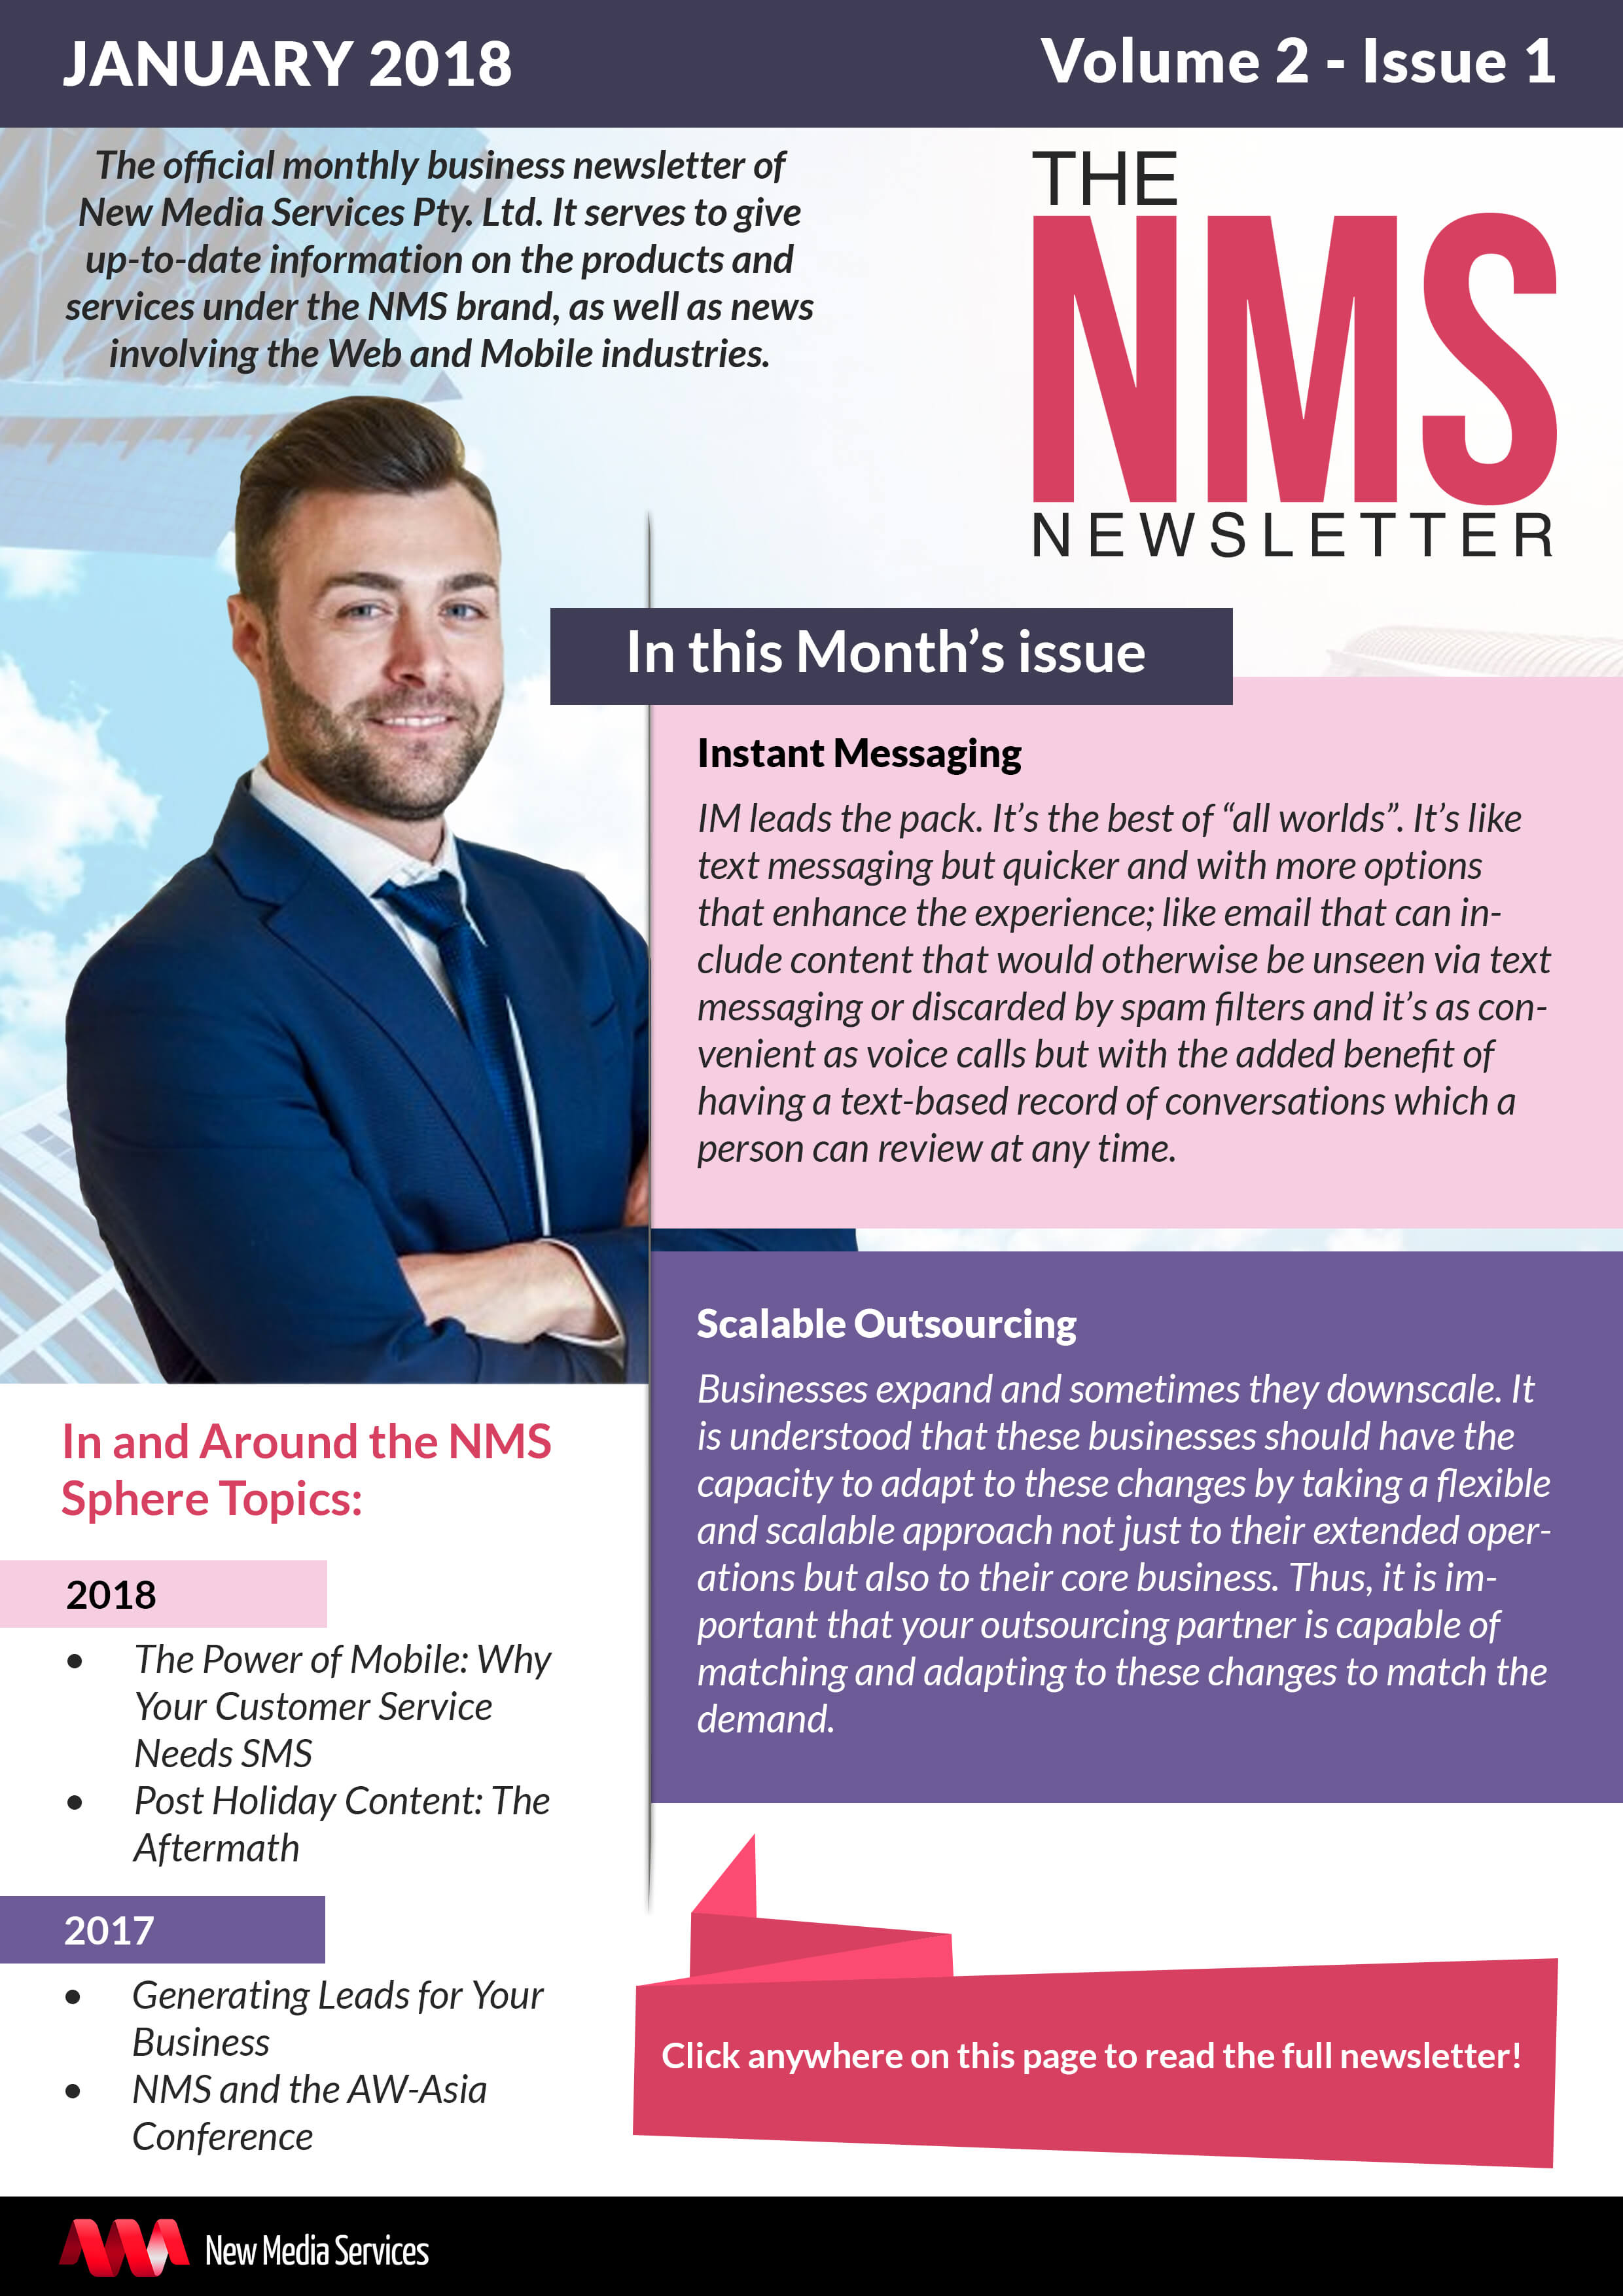 NMS Newsletter banner for January 2018